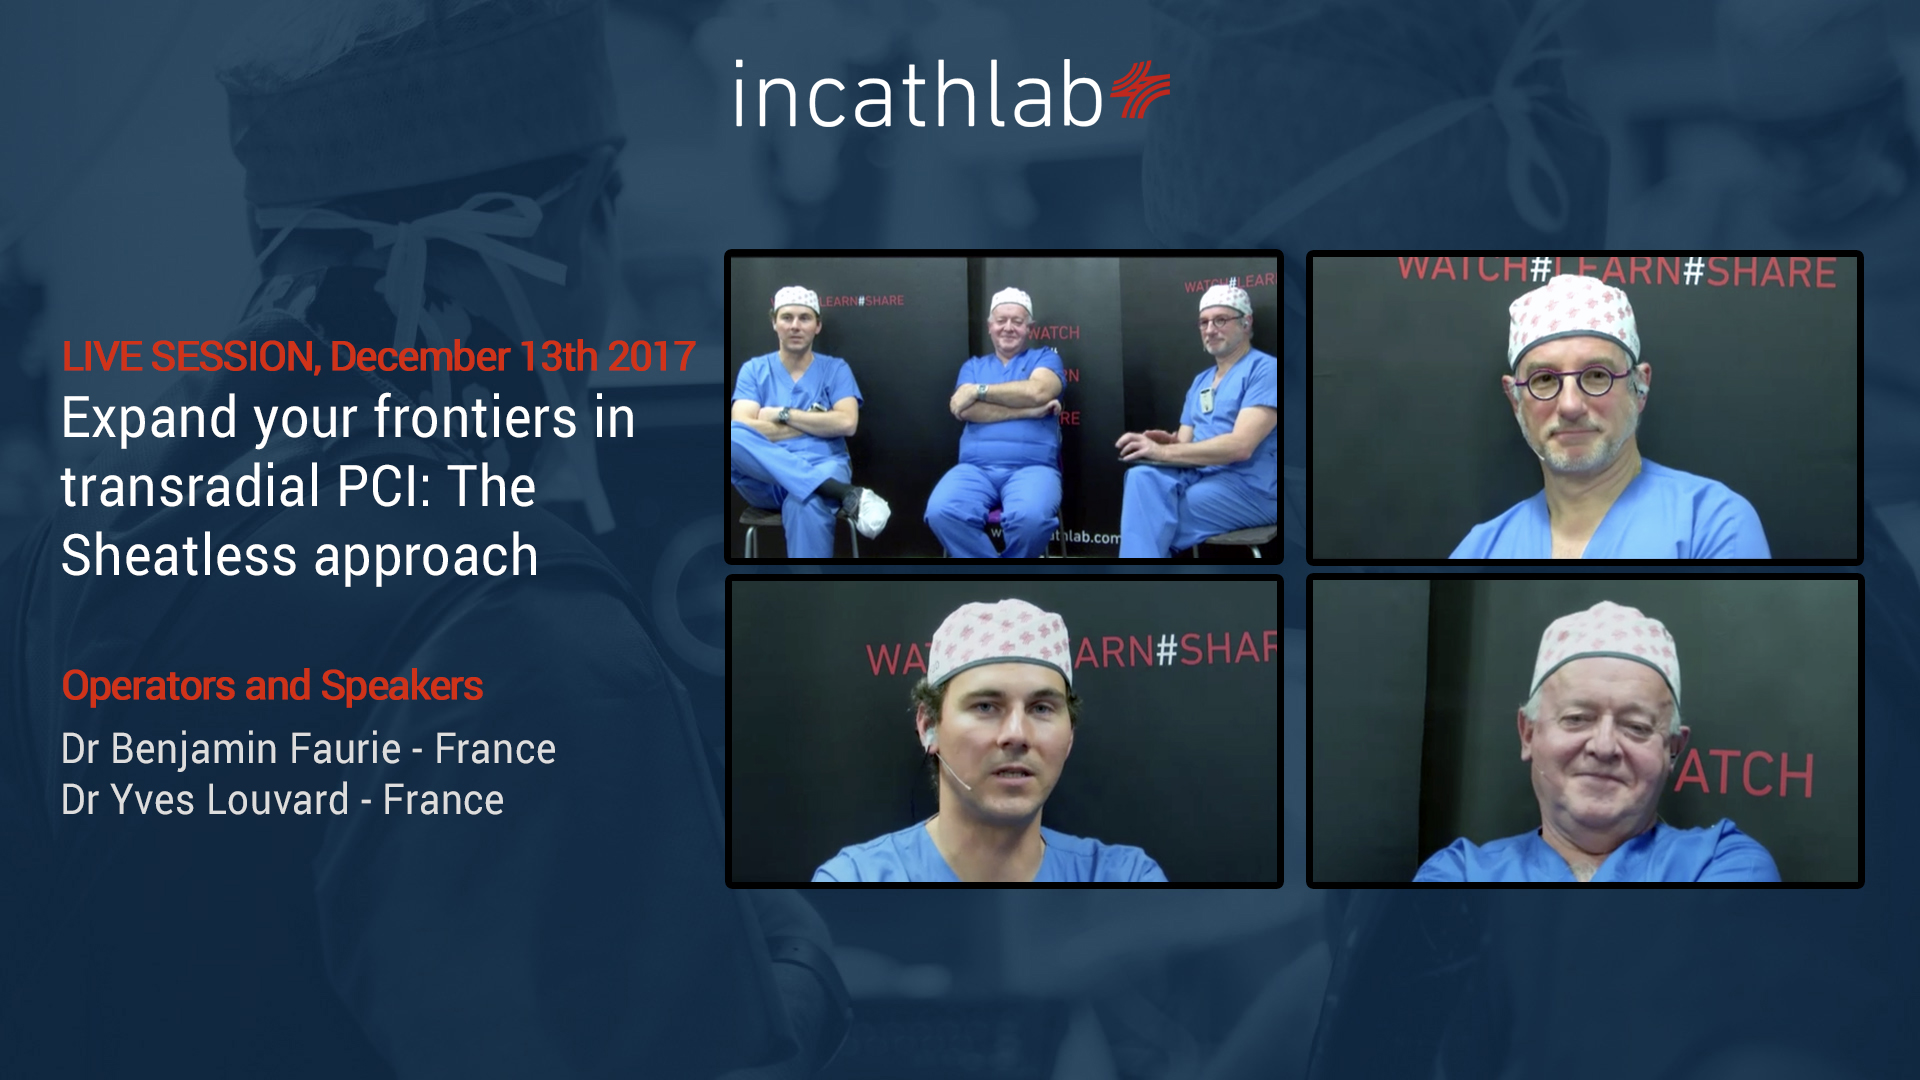 Expand your frontiers in transradial PCI: The sheathless approach